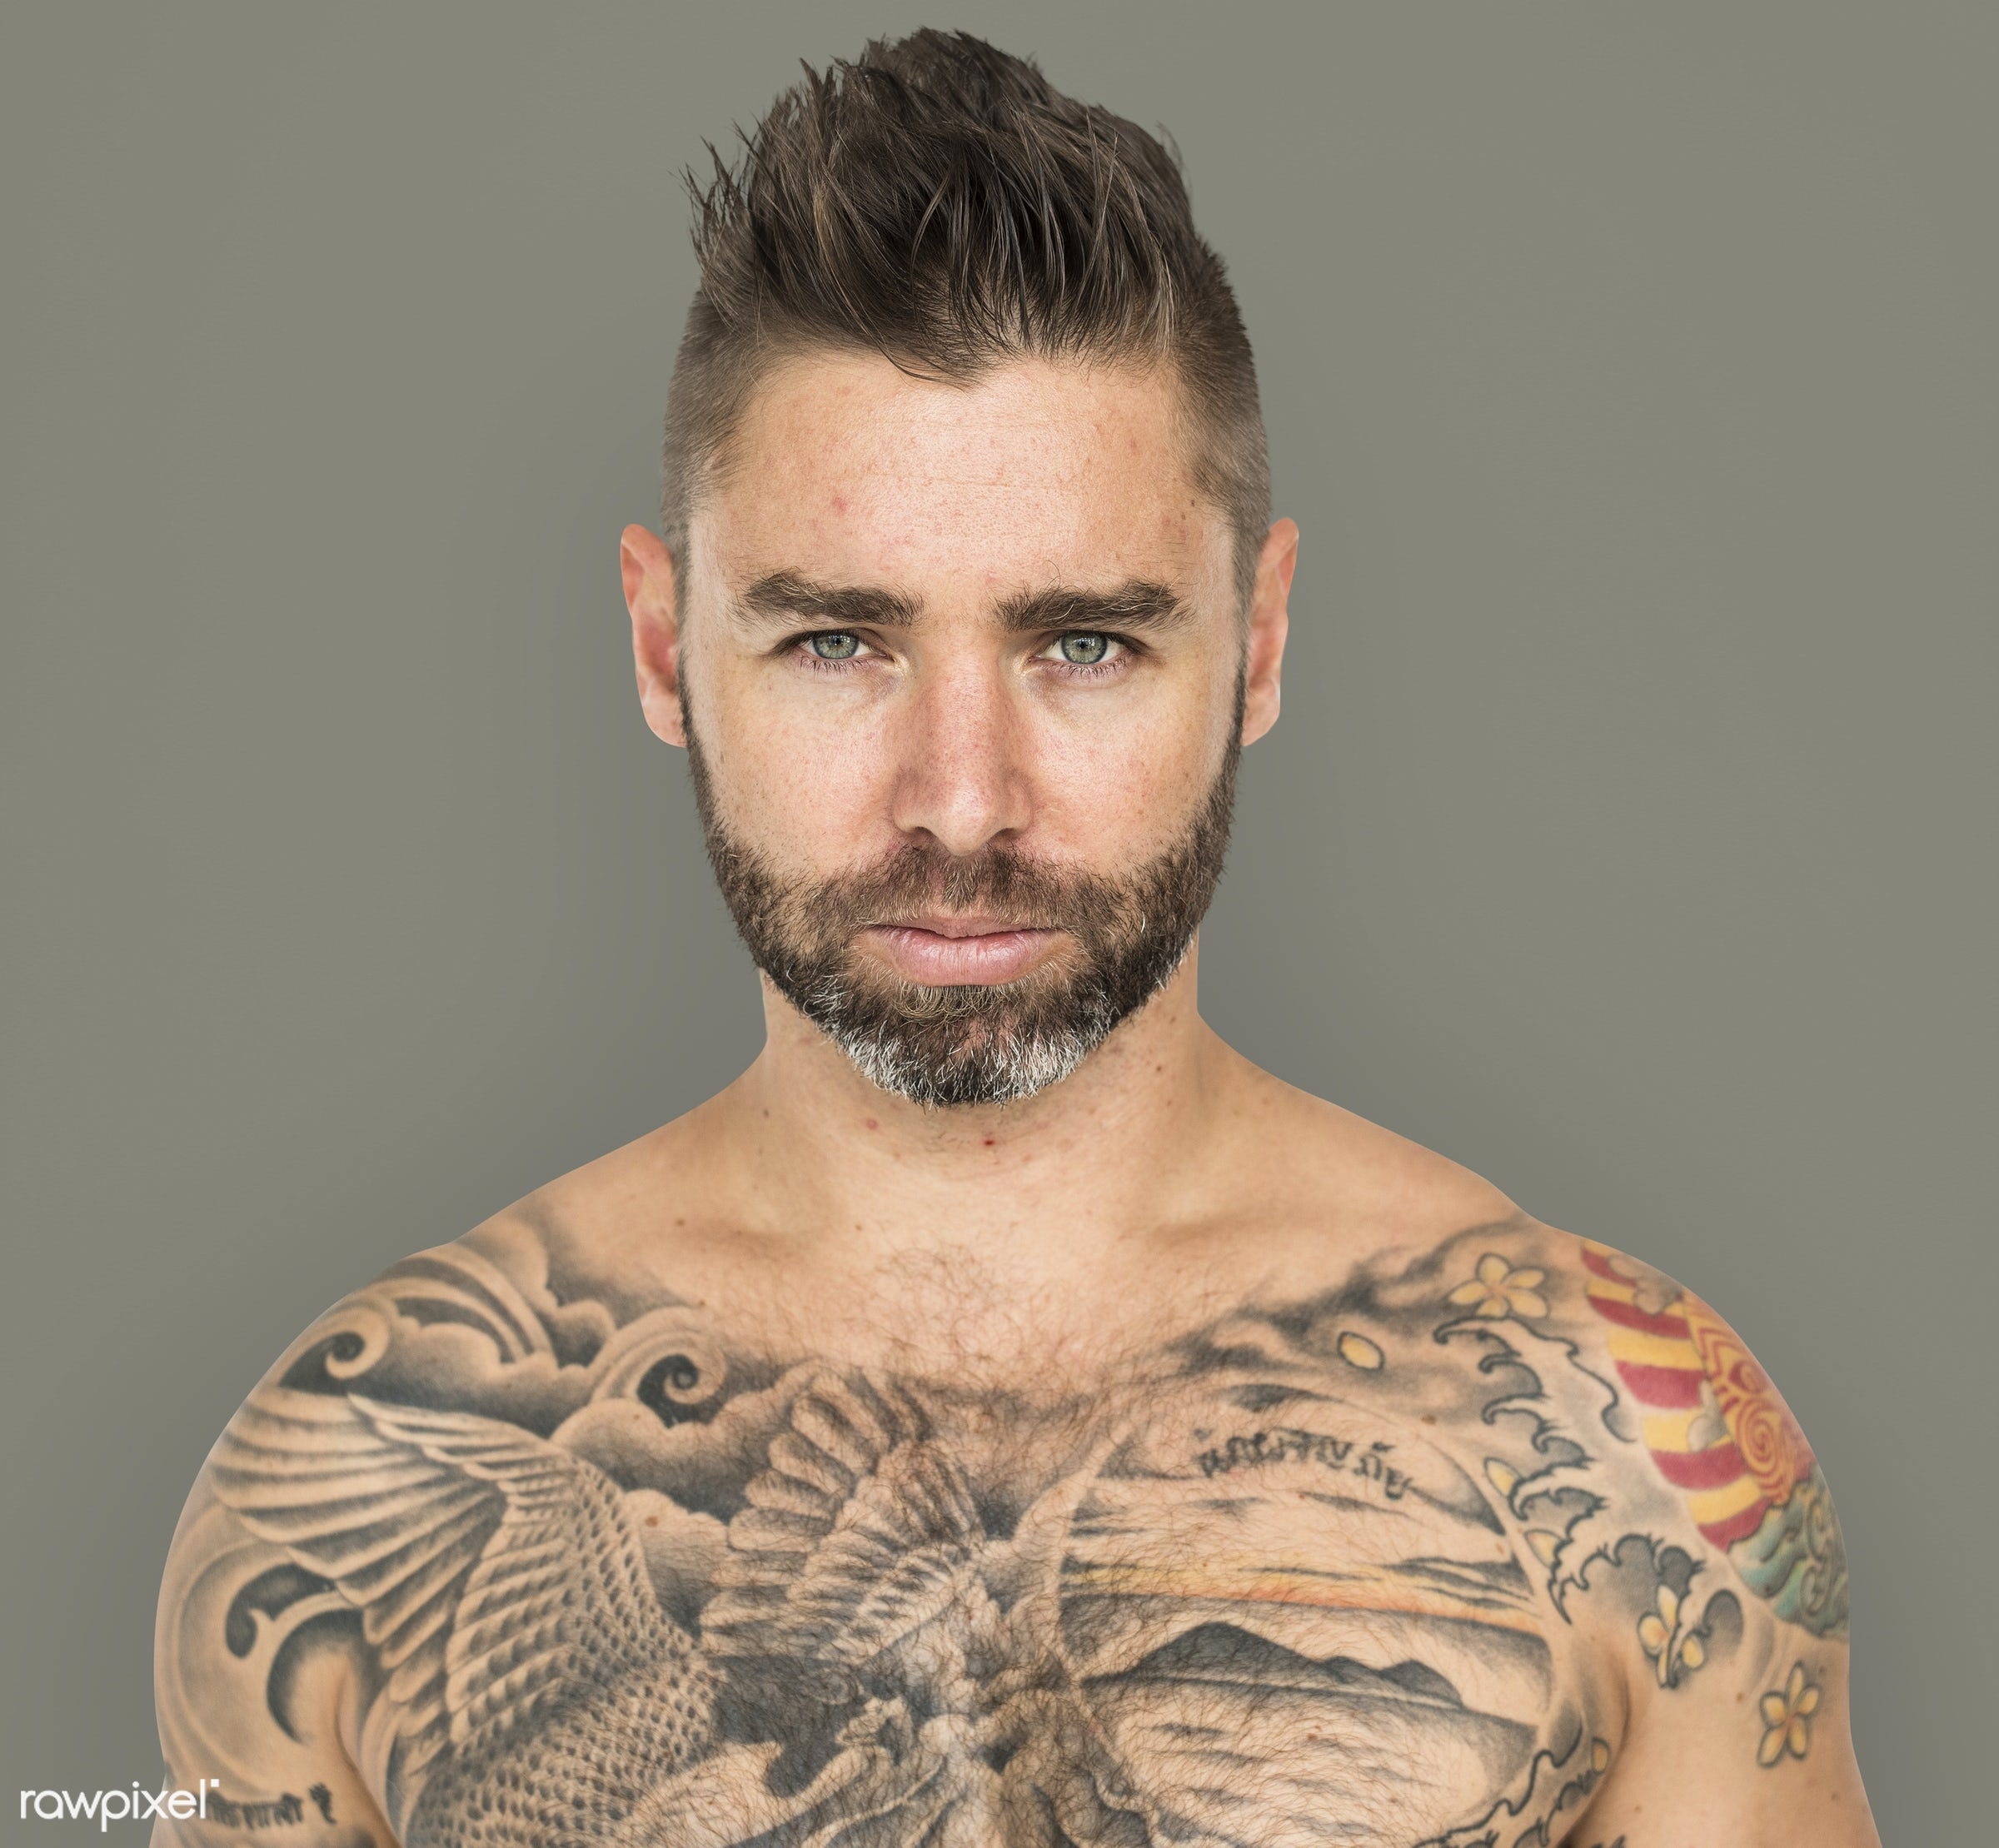 studio, expression, person, poker face, chest, people, caucasian, bare chest, fit, style, solo, tattoo, man, isolated, male...